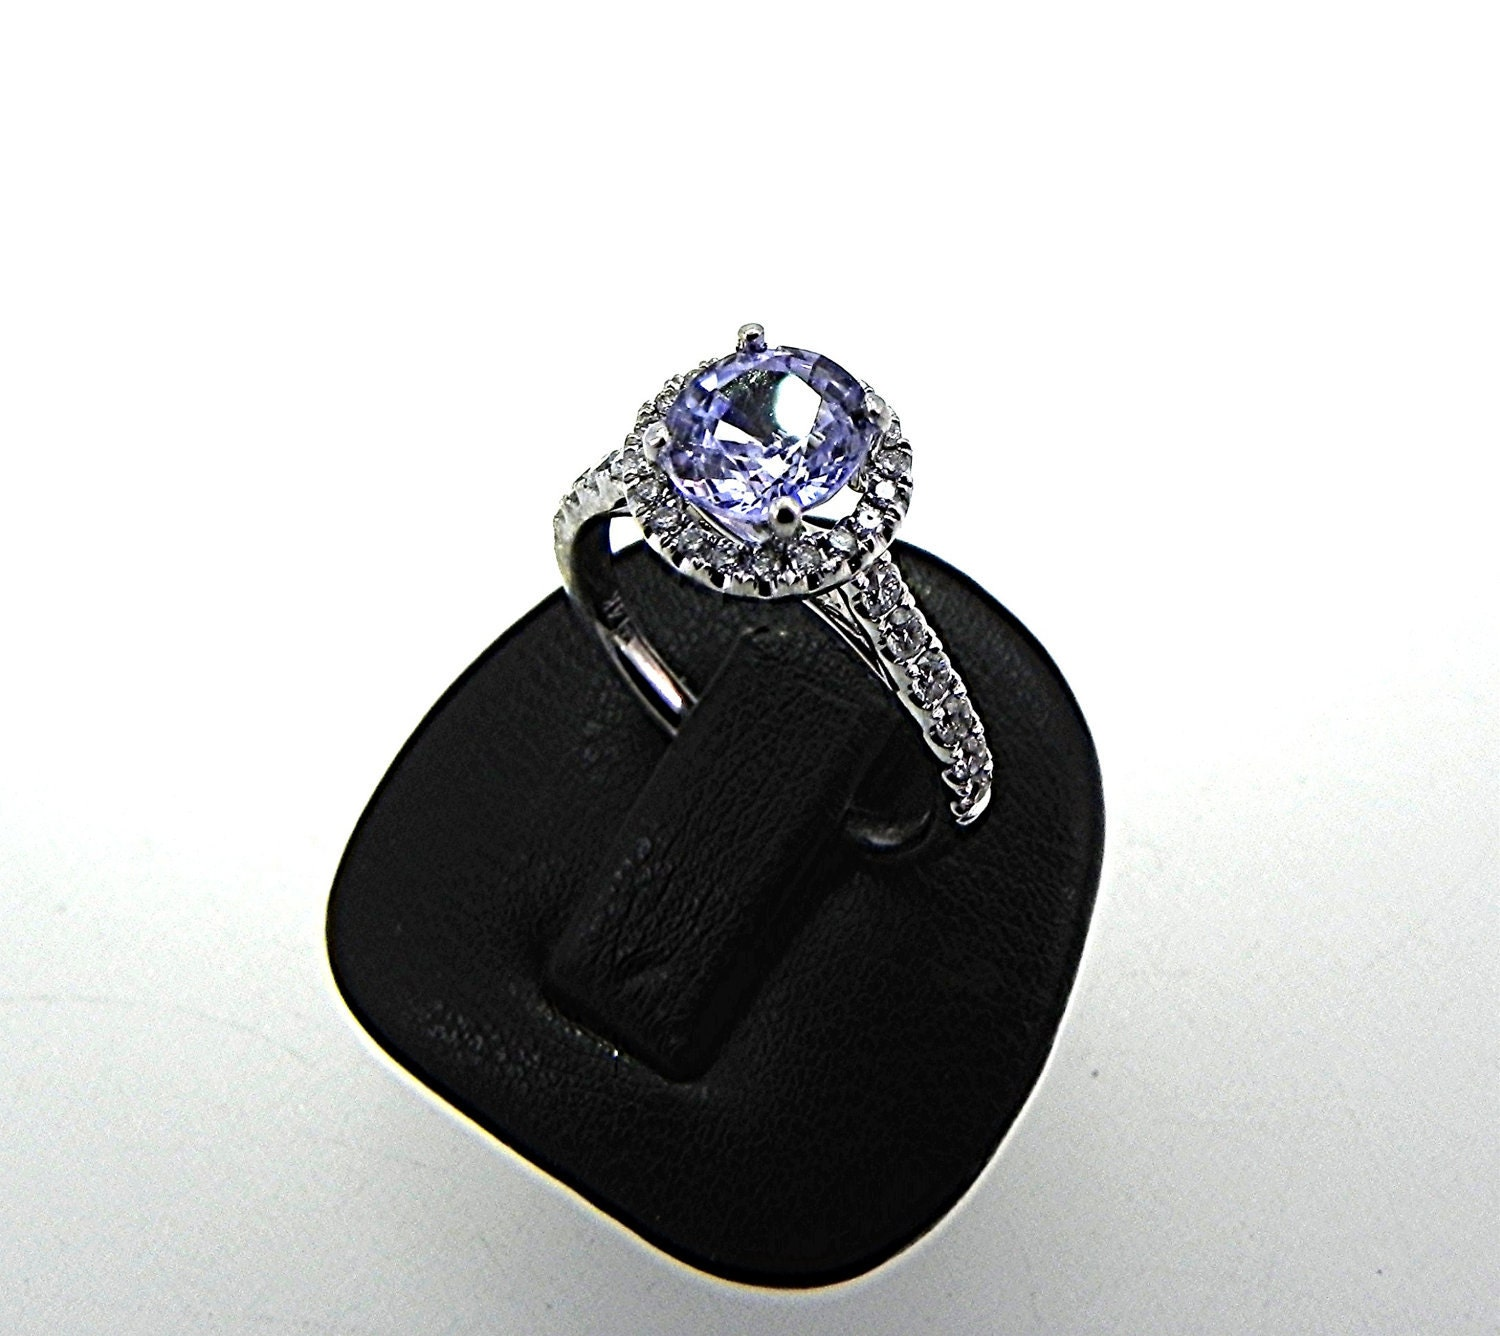 Natural Light blue Sapphire 1.30ct set in 14K white gold Halo ring with .30 carats of diamonds